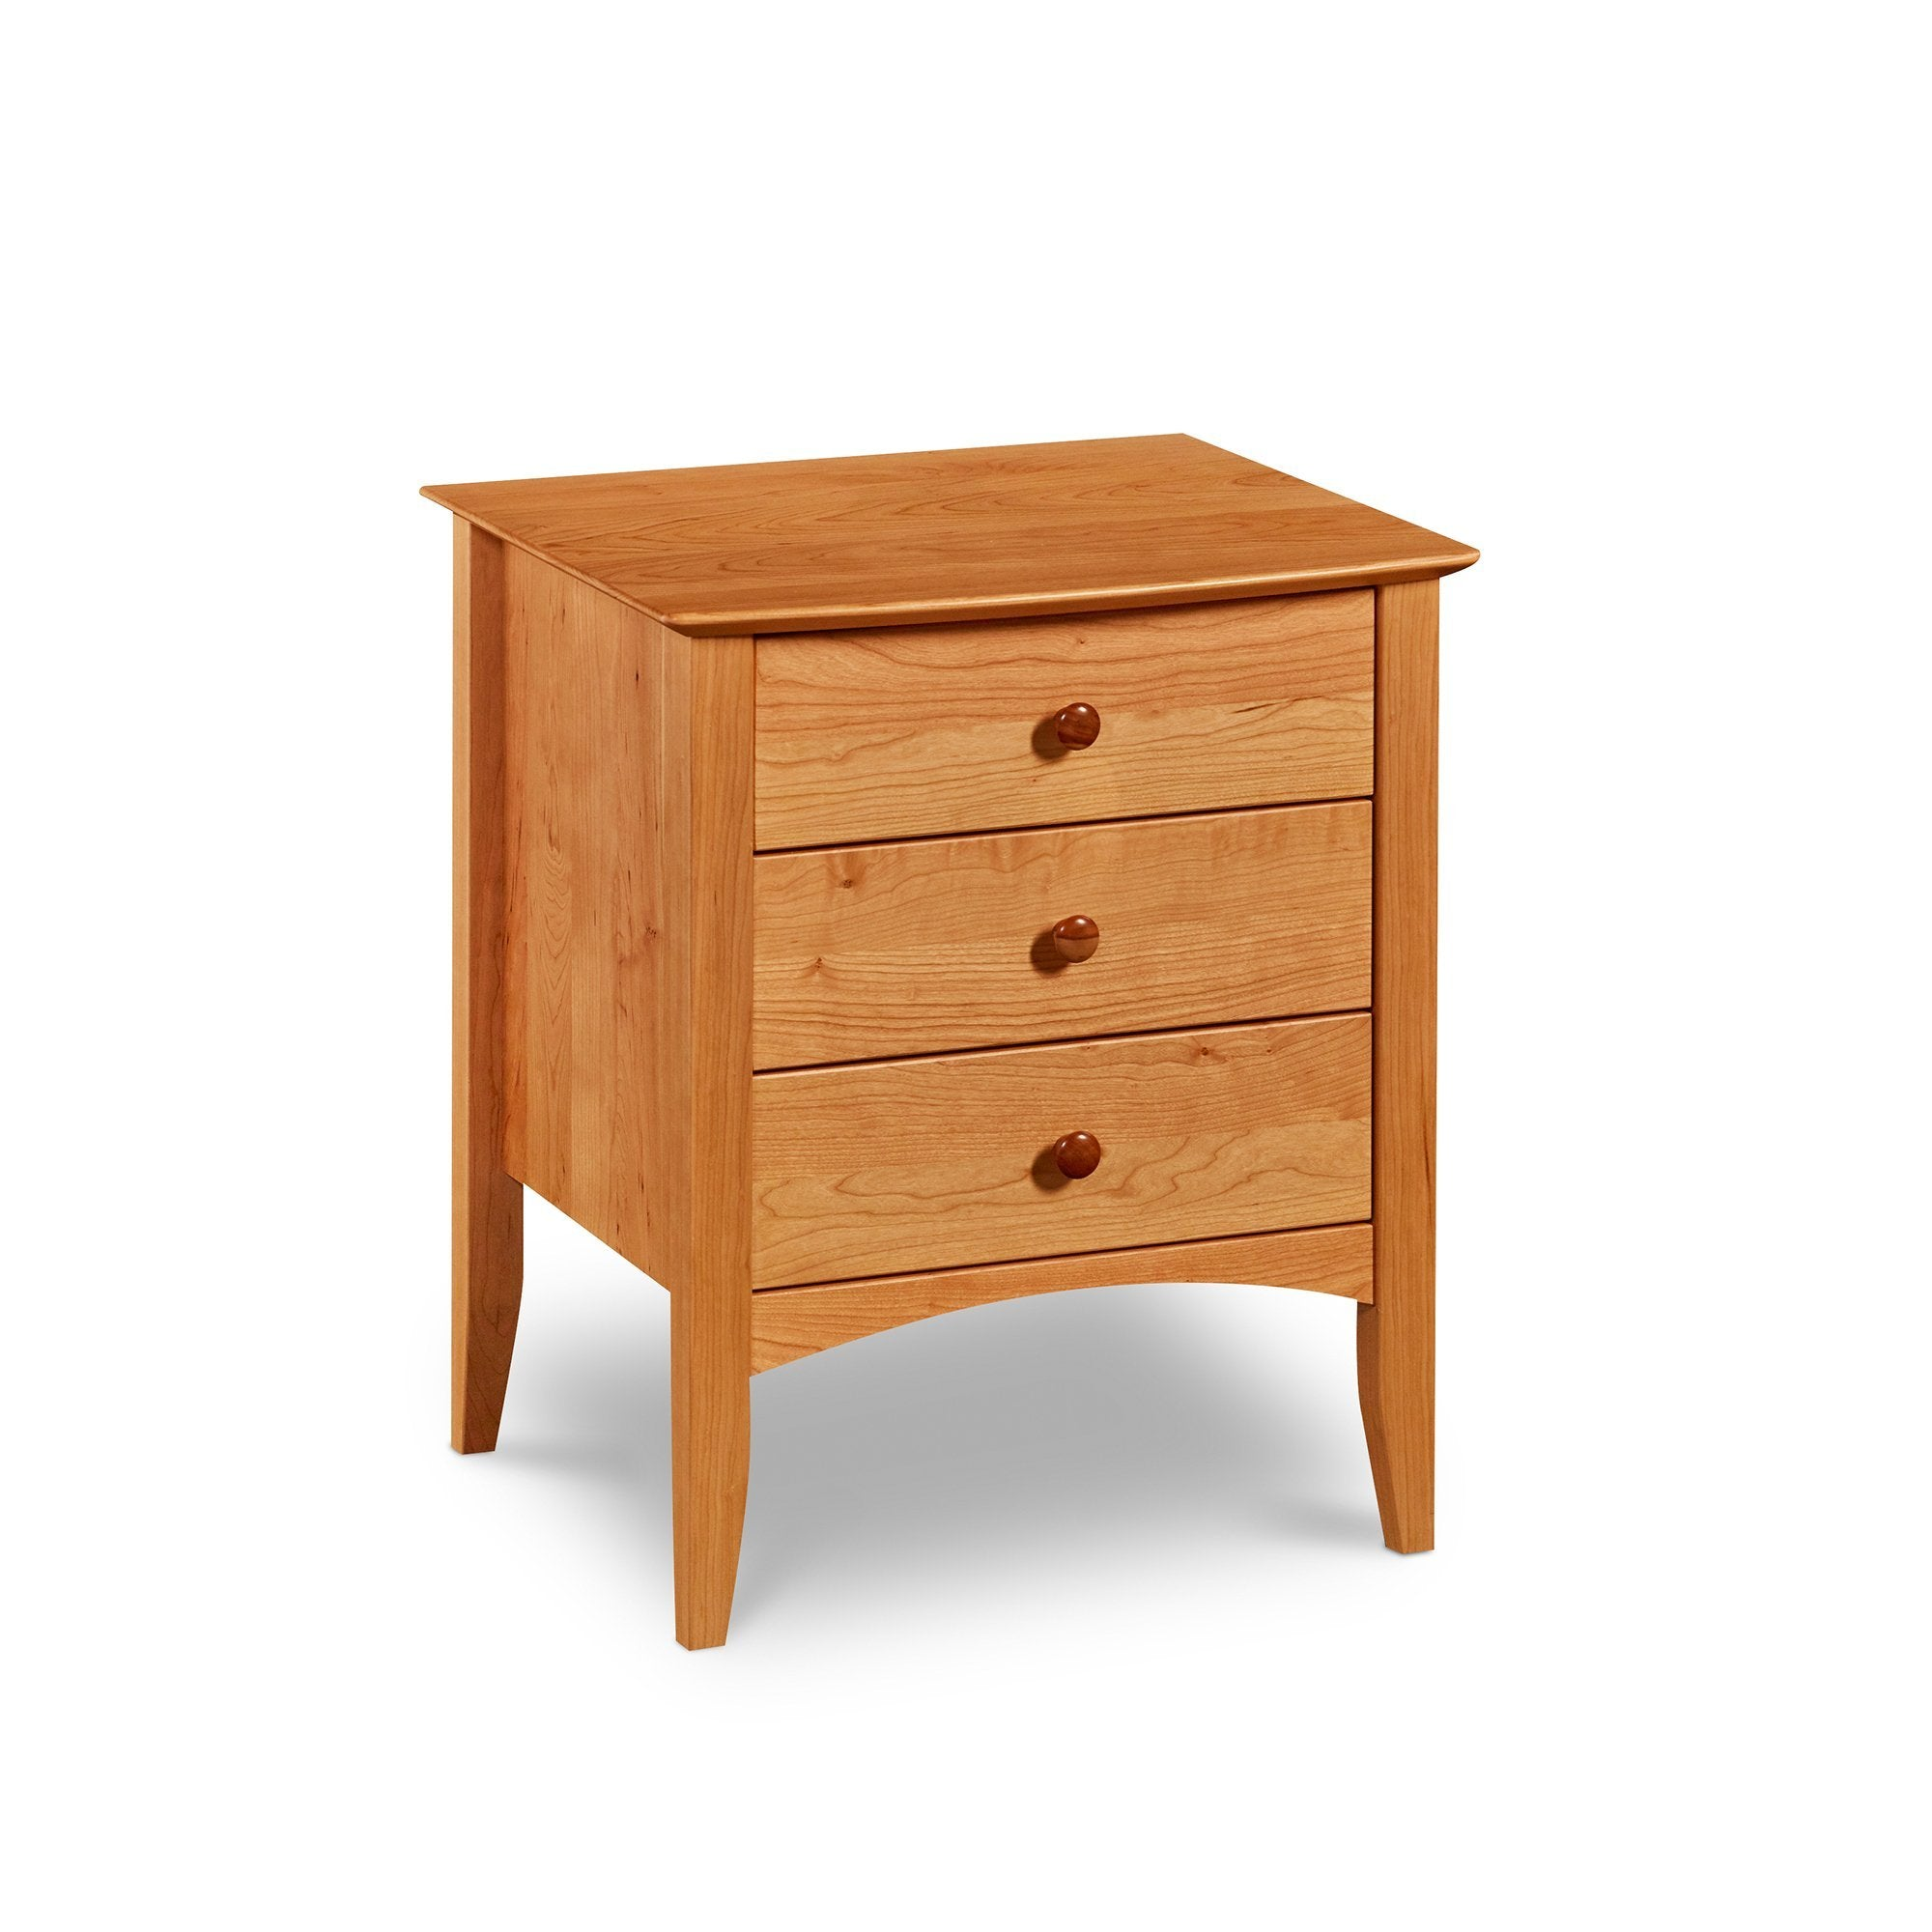 Shaker style Penobscot nightstand with three drawers, an arched apron and tapered legs, in cherry wood